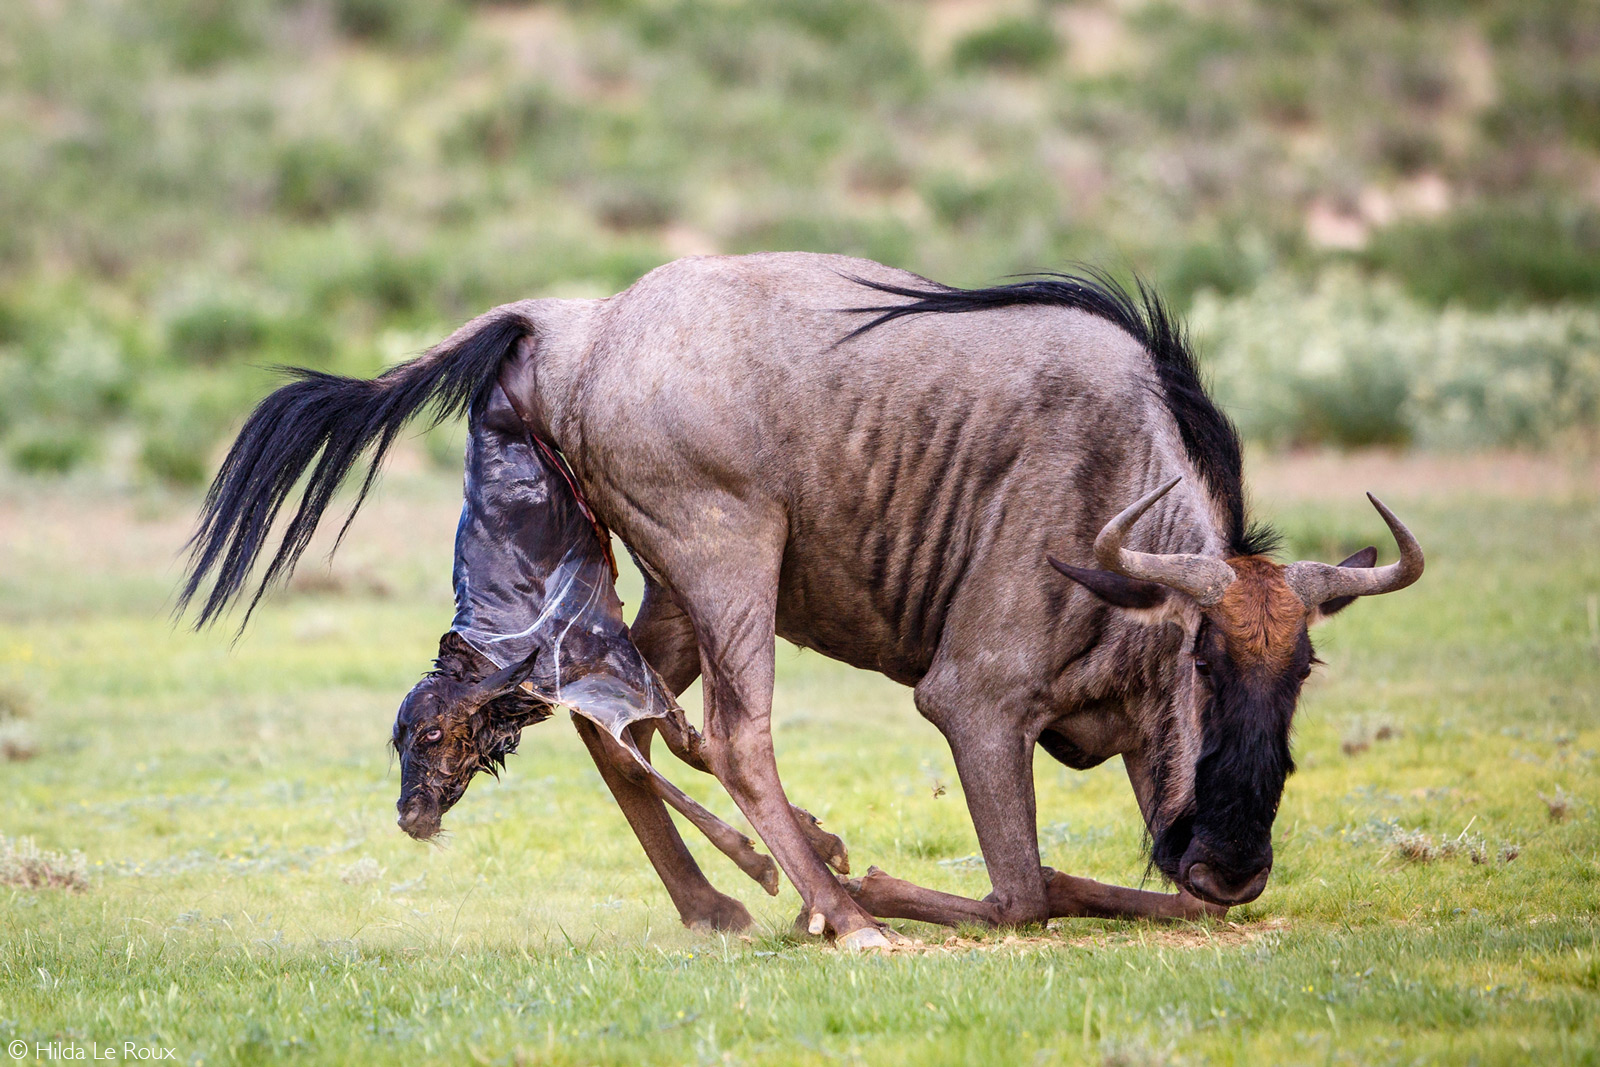 Wildebeest giving birth. Kgalagadi Transfrontier Park, South Africa © Hilda Le Roux